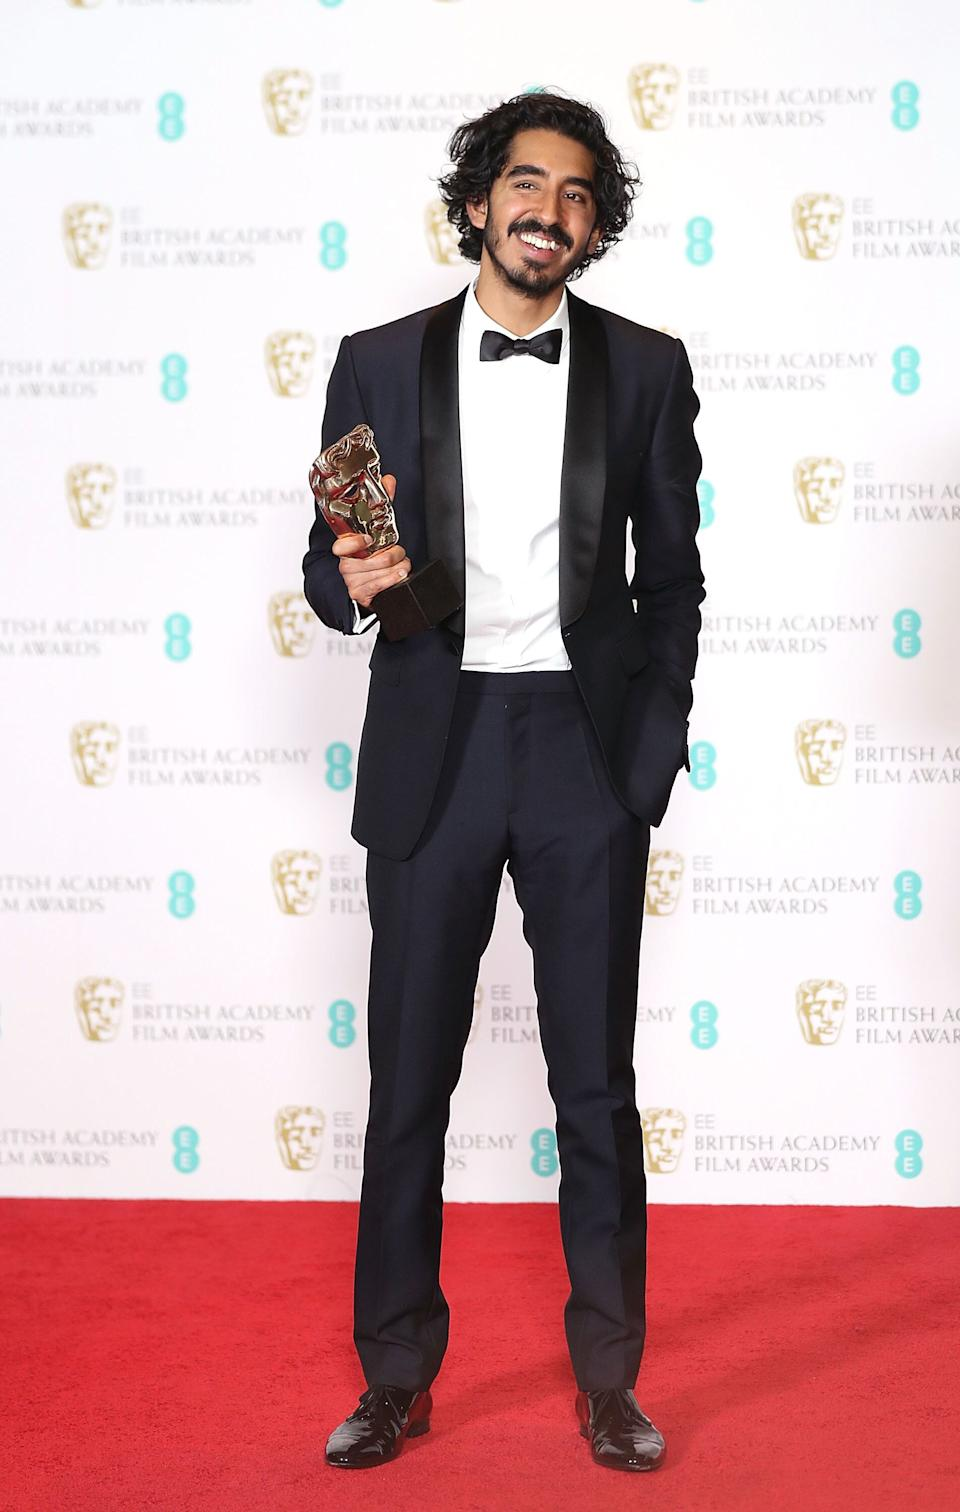 Patel at the 70th EE British Academy Film Awards at Royal Albert Hall in London on Feb. 12, 2017.